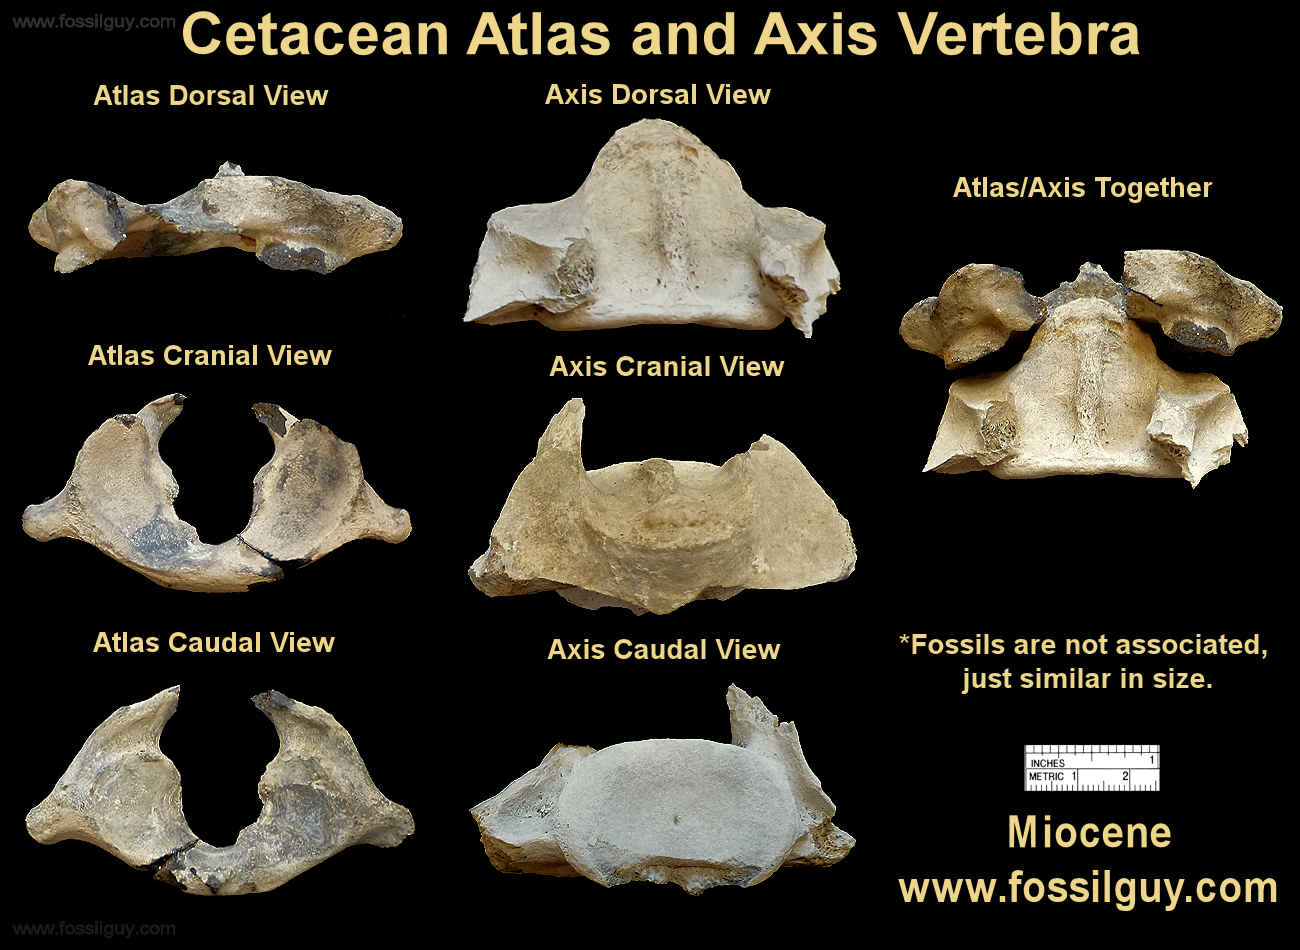 An Atlas and Axis Fossil Cetacean Vertebra